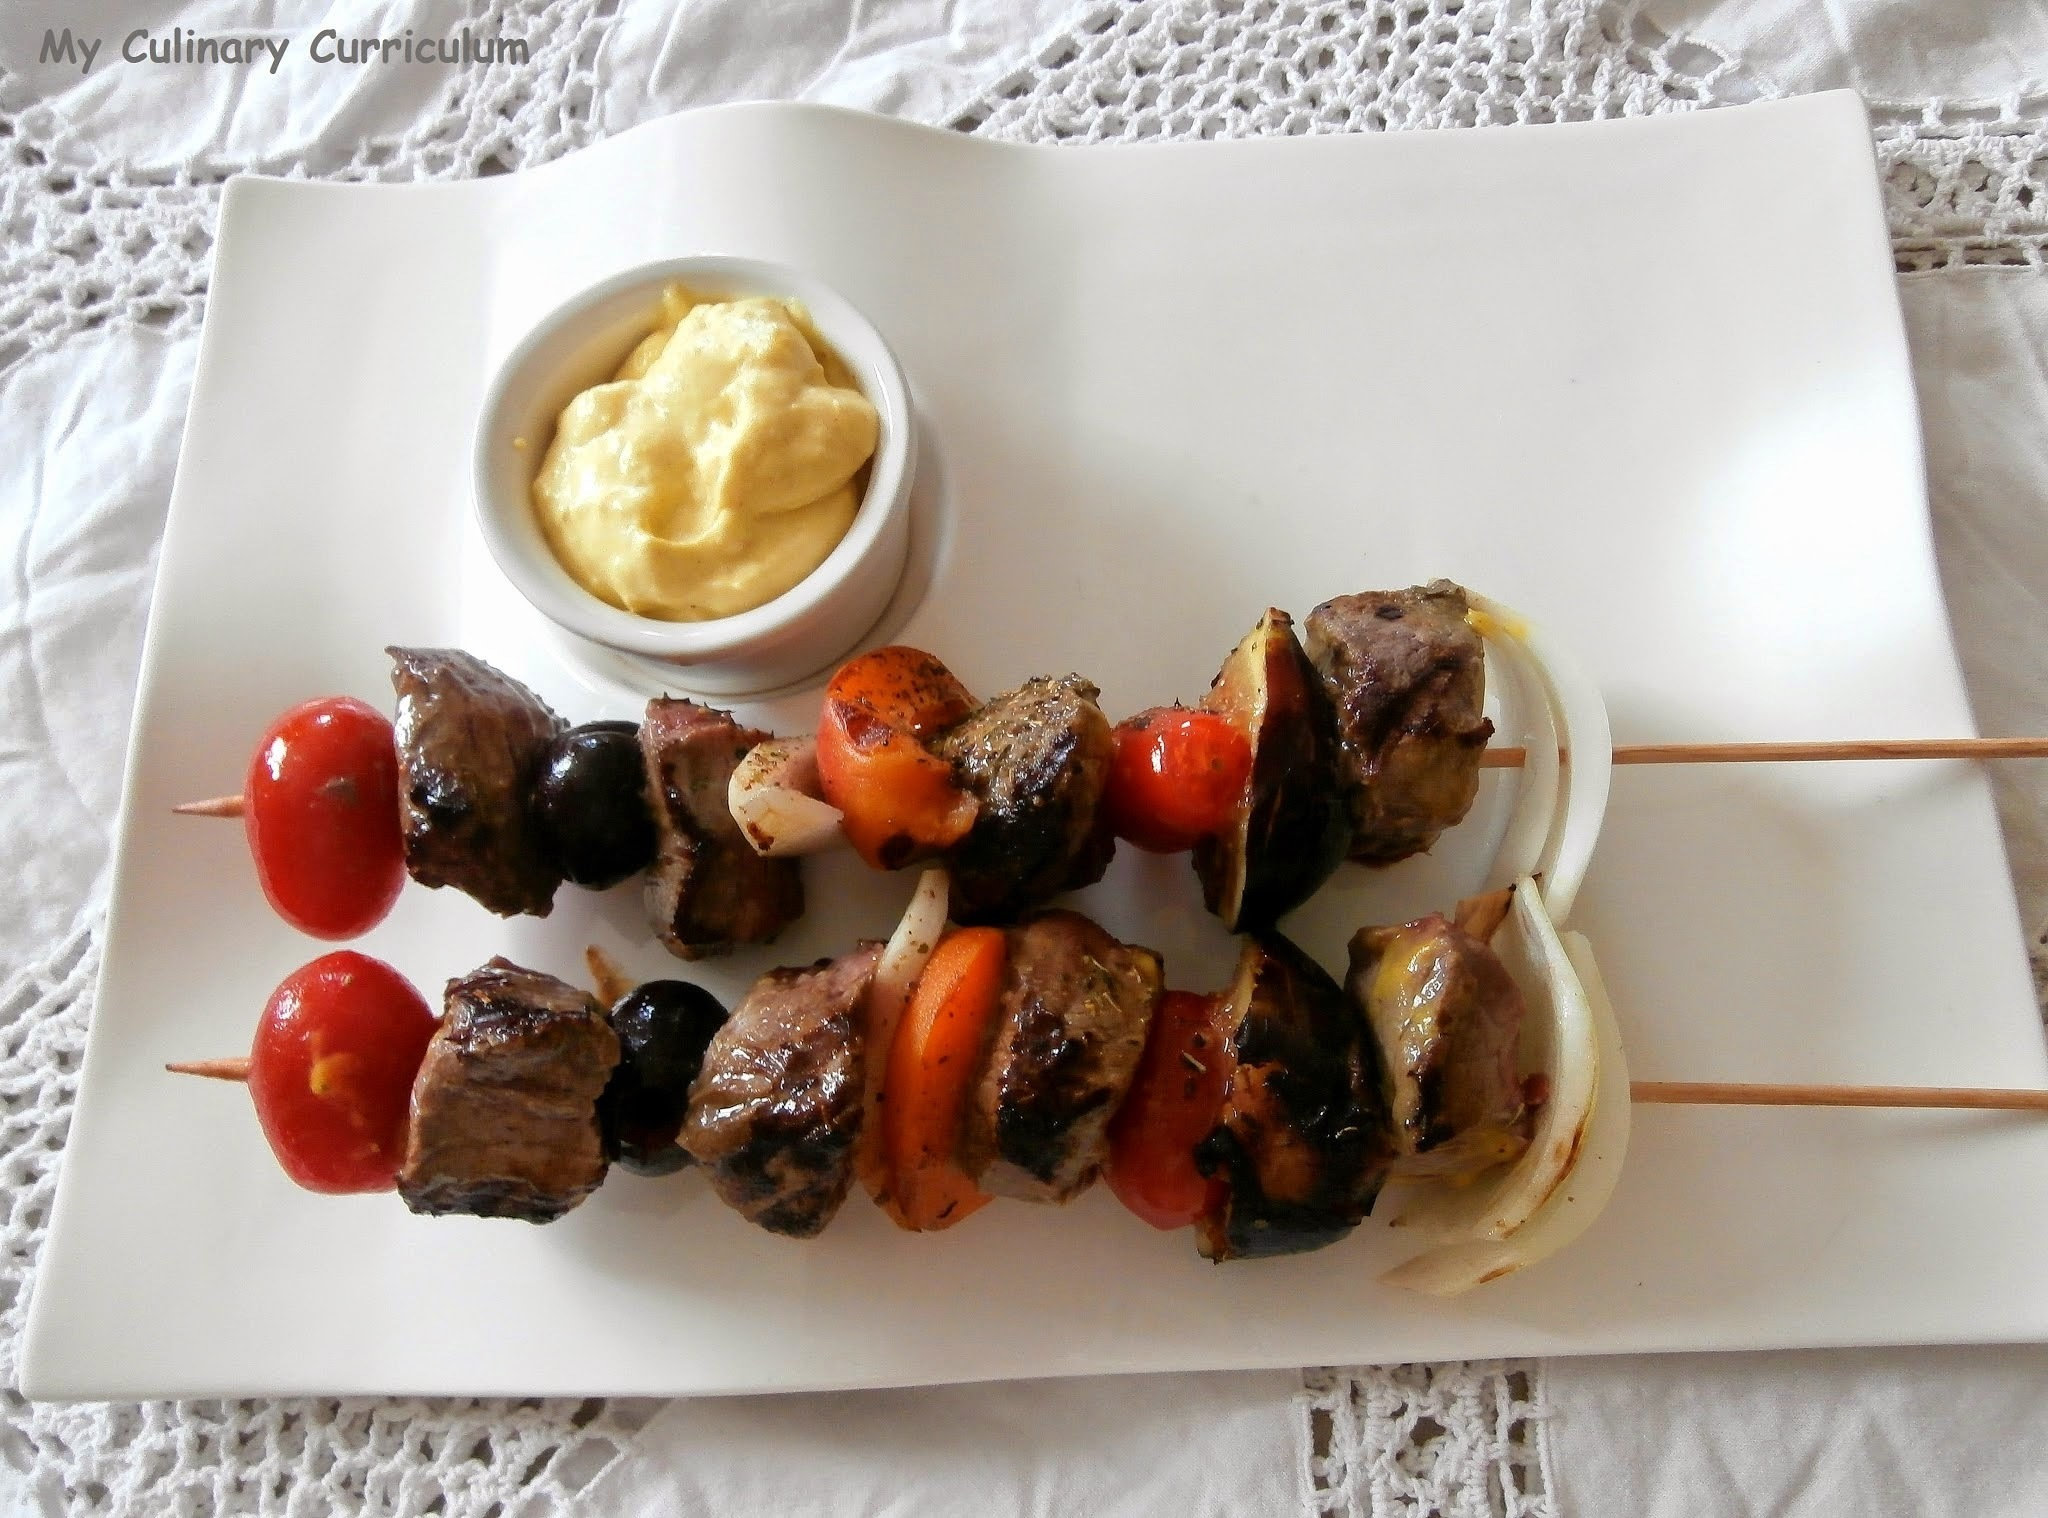 Brochettes de bœuf, figues, cerises, abricots, tomates cerises et chantilly à la moutarde (Beef skewers, figs,cherries, apricots, cherry tomatoes and mustard chantilly)